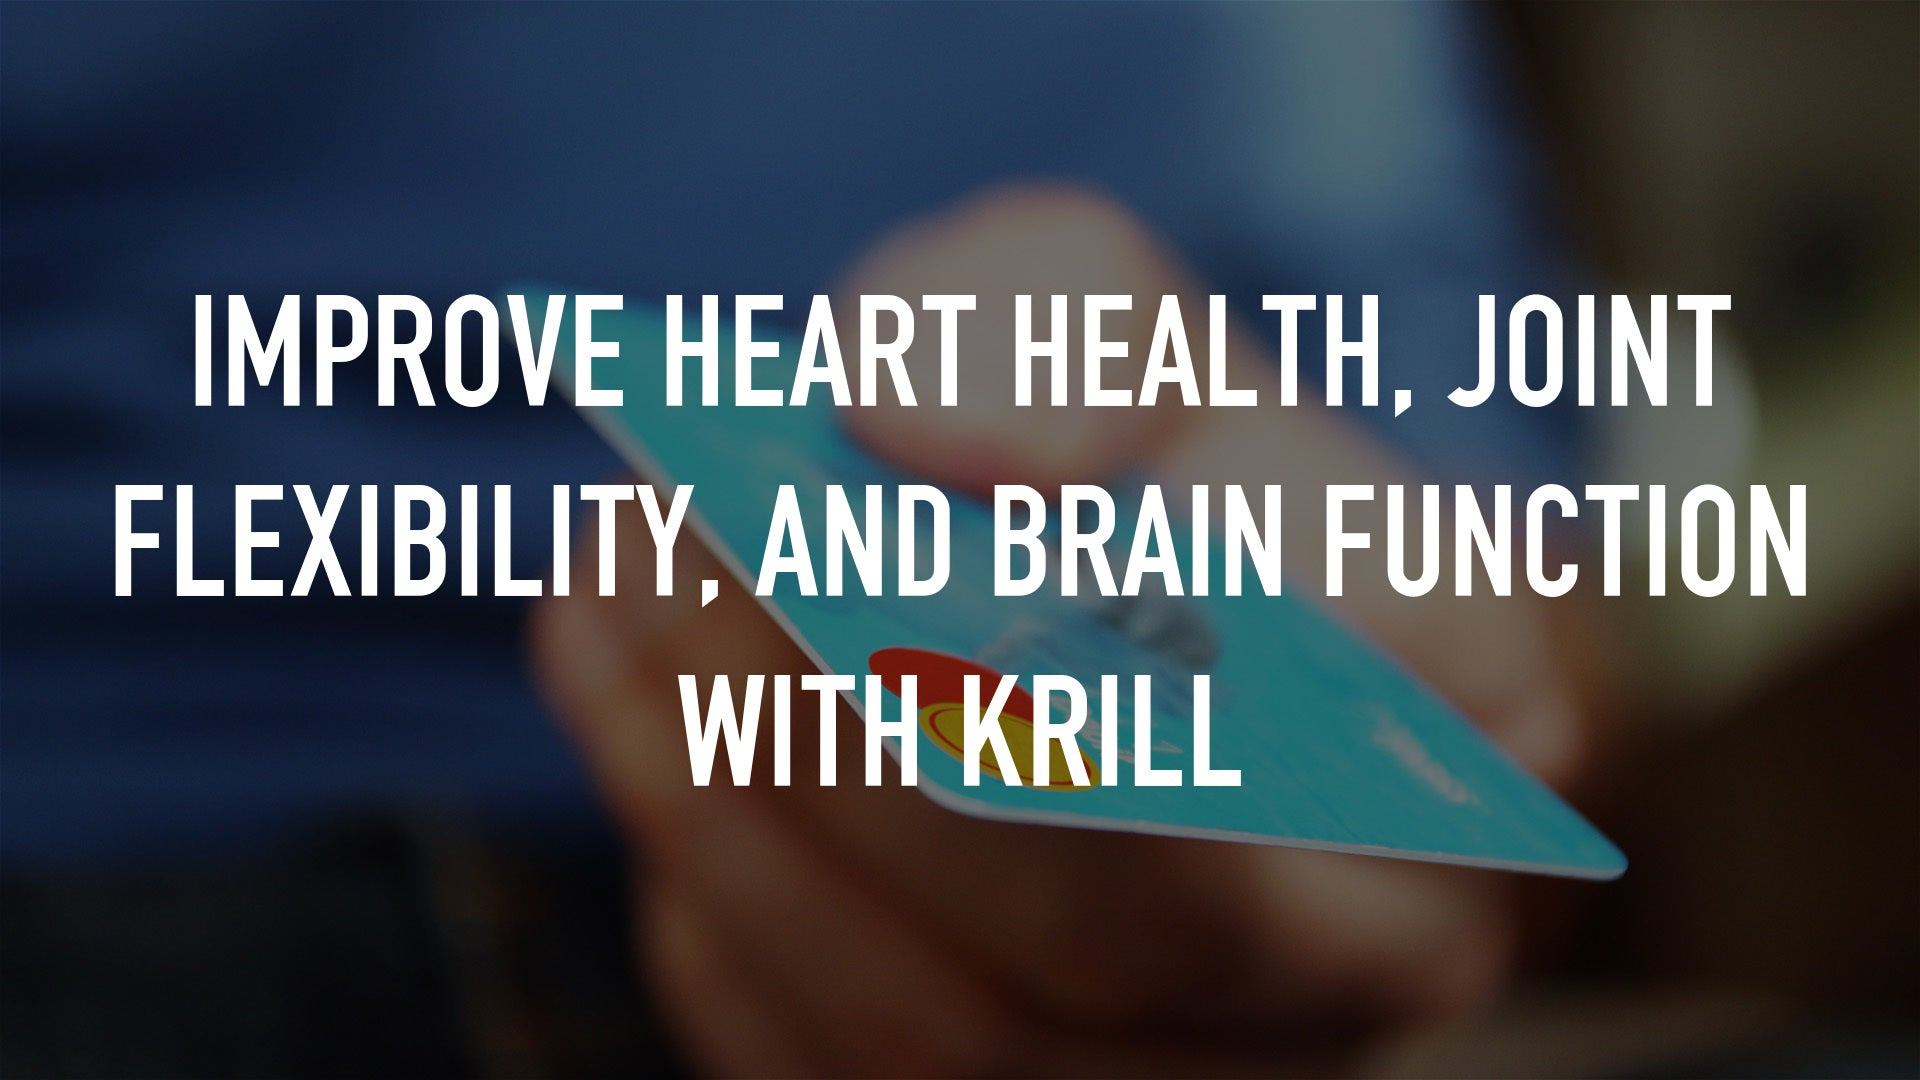 Improve heart health, joint flexibility, and brain function with Krill